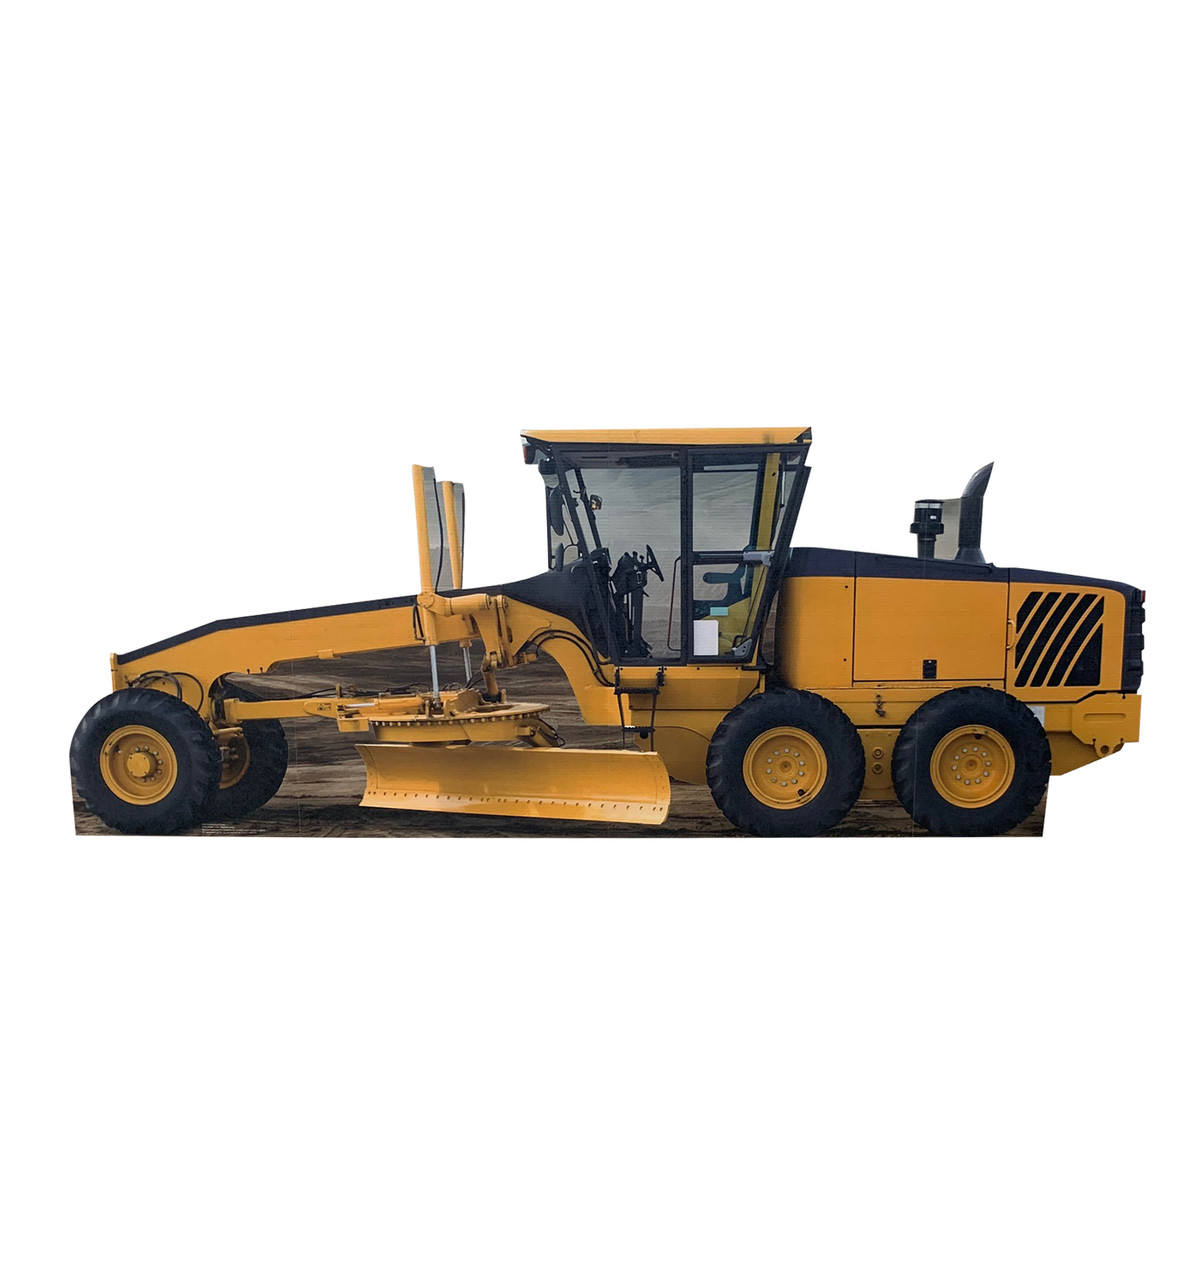 Life-size cardboard standee of a construction grader.